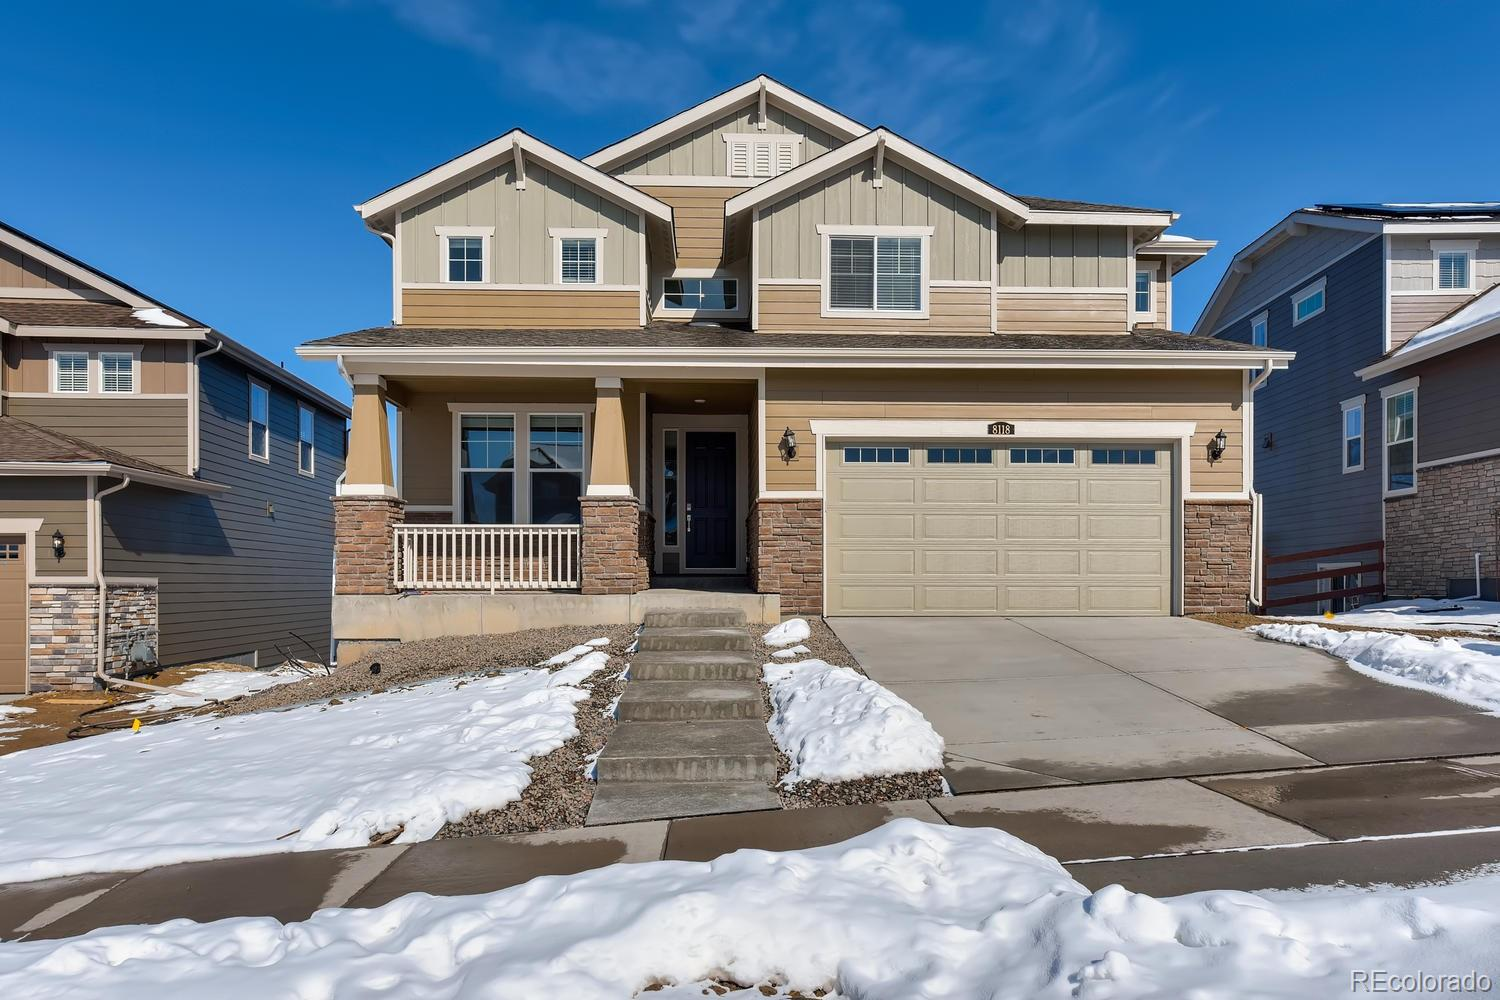 Available March 2020! This stunning Ponderosa 2-story home features 4 beds, 3 baths, kitchen w/breakfast nook, greatroom, main floor study, loft unfinished basement and 2 car garage. Covered deck & window coverings. Offering a peacefulsetting, this home lives large. Colorado living at its finest! Experience all that Whispering Pines has to offer – from themiles of trails, clubhouse, future pool & more. Lennar has once again seamlessly blended and showcased the unparalleledbeauty of Colorado with the most innovative homes, energy efficient technologies & modern conveniences, bringing thebest of both worlds together. This amazing home thoughtfully combines both elegance and luxury, welcome home! Youwill not be disappointed.